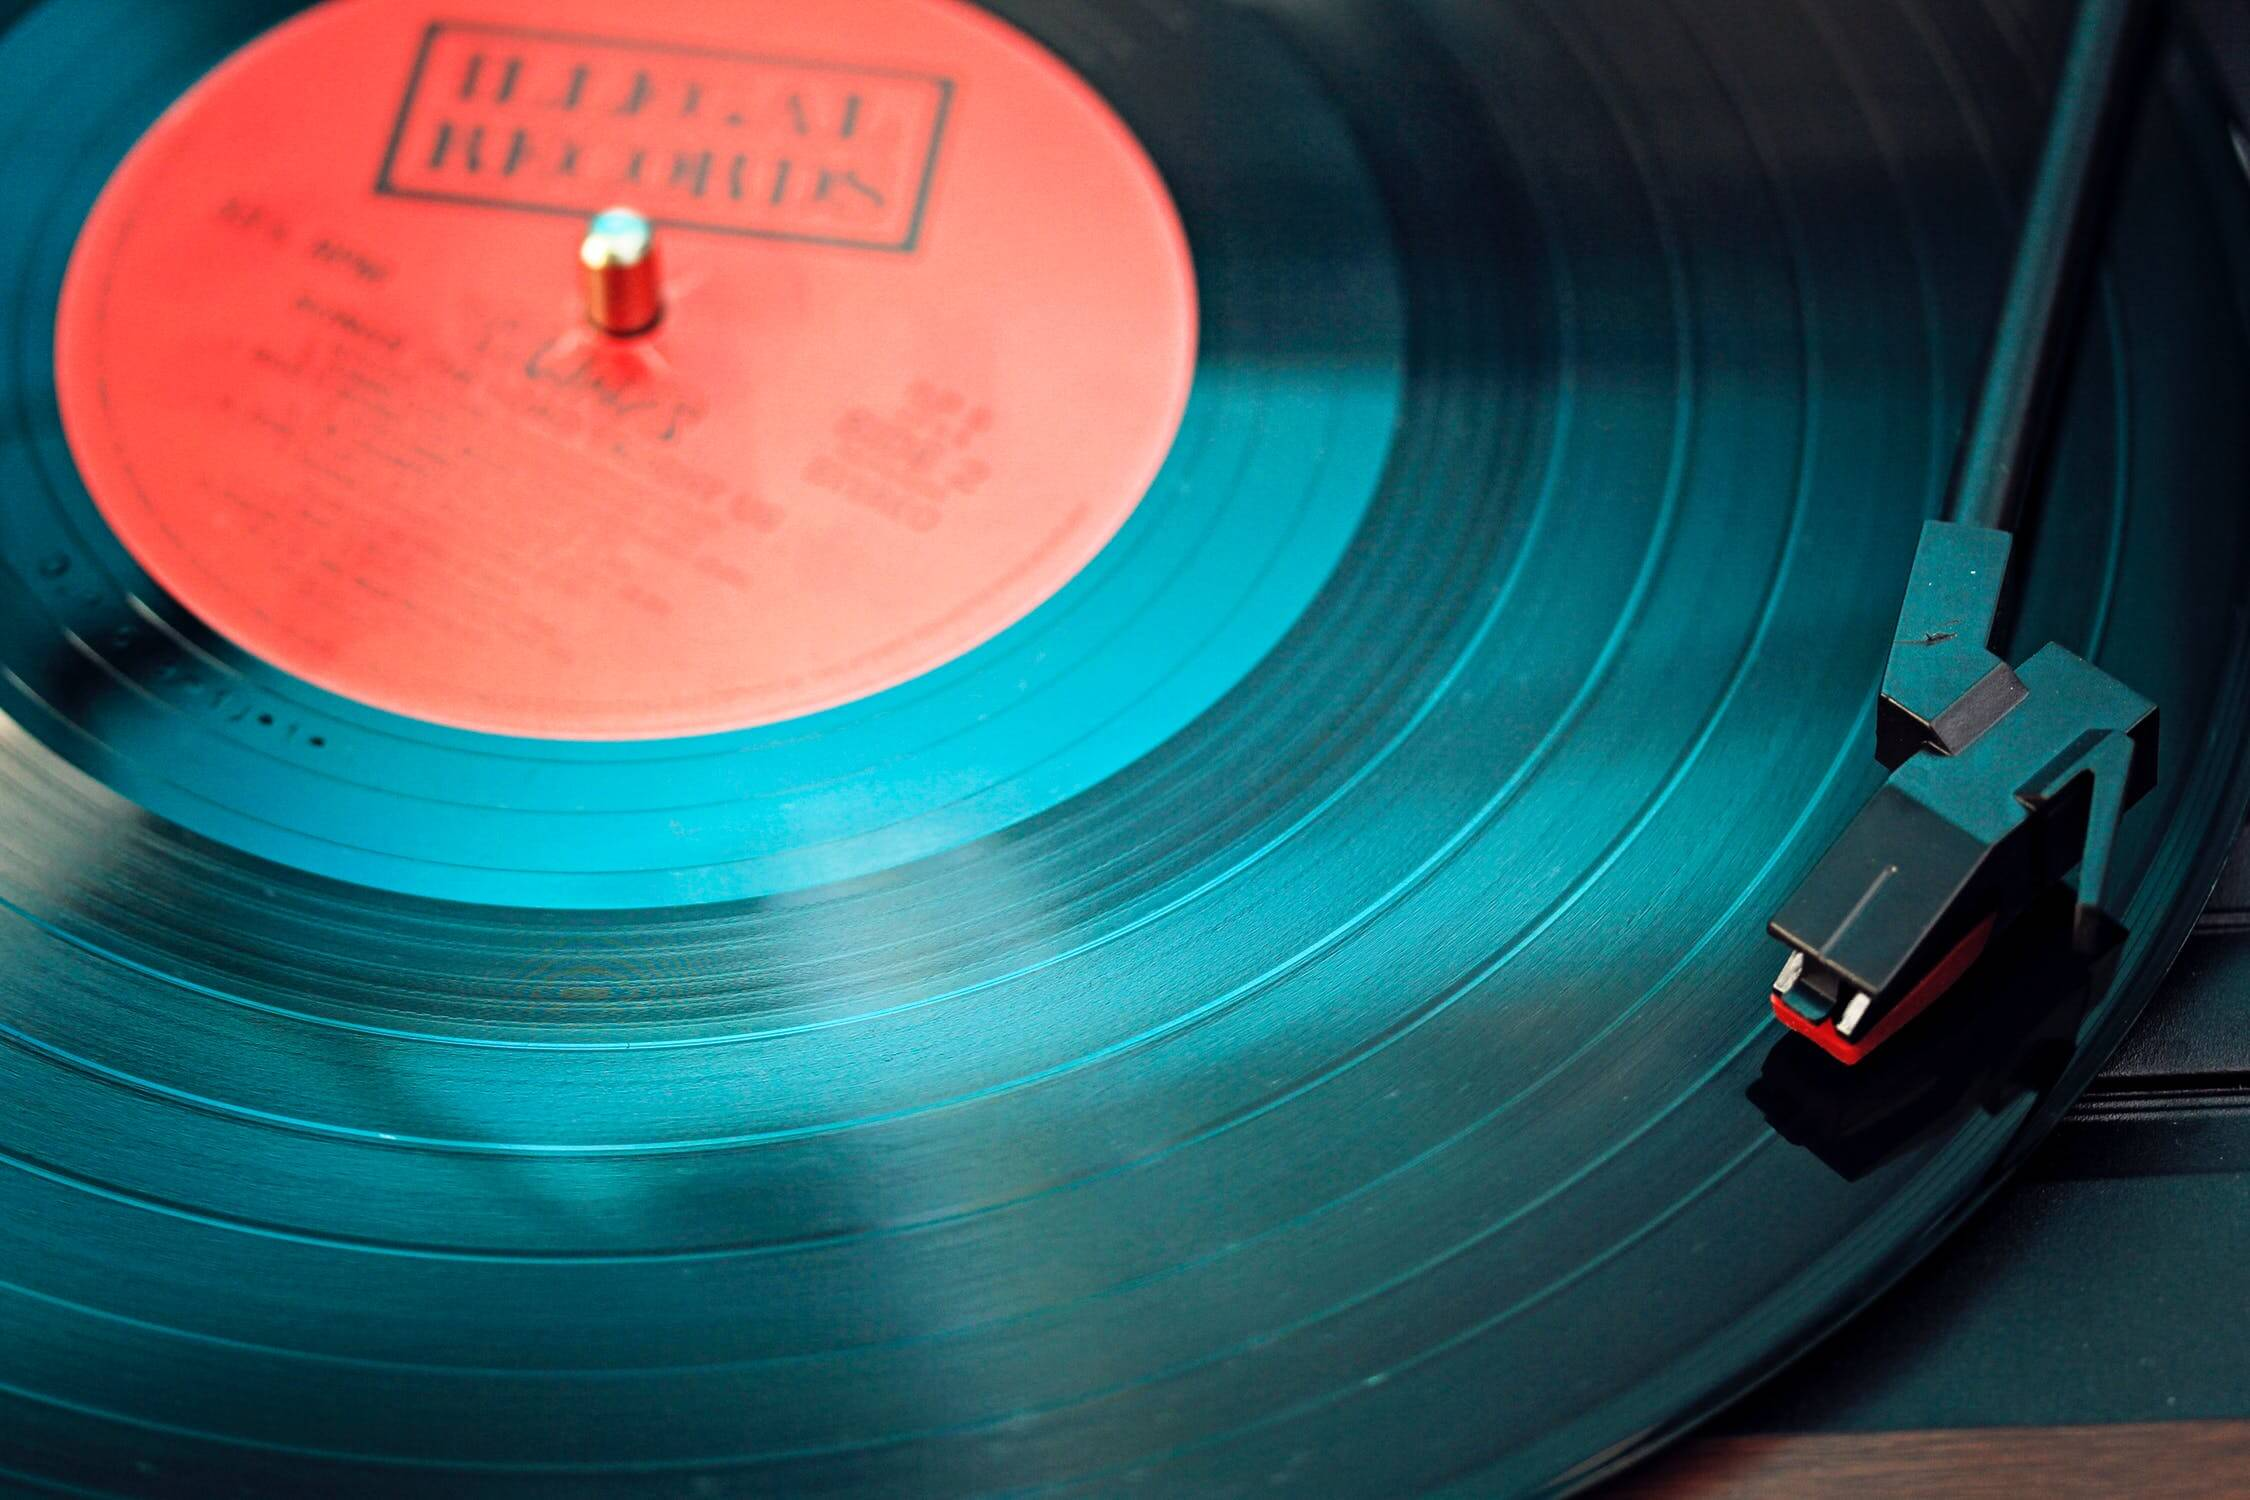 A record being played on a record player. Listening to music to lower stress is one of the healthy habits seniors can practice.